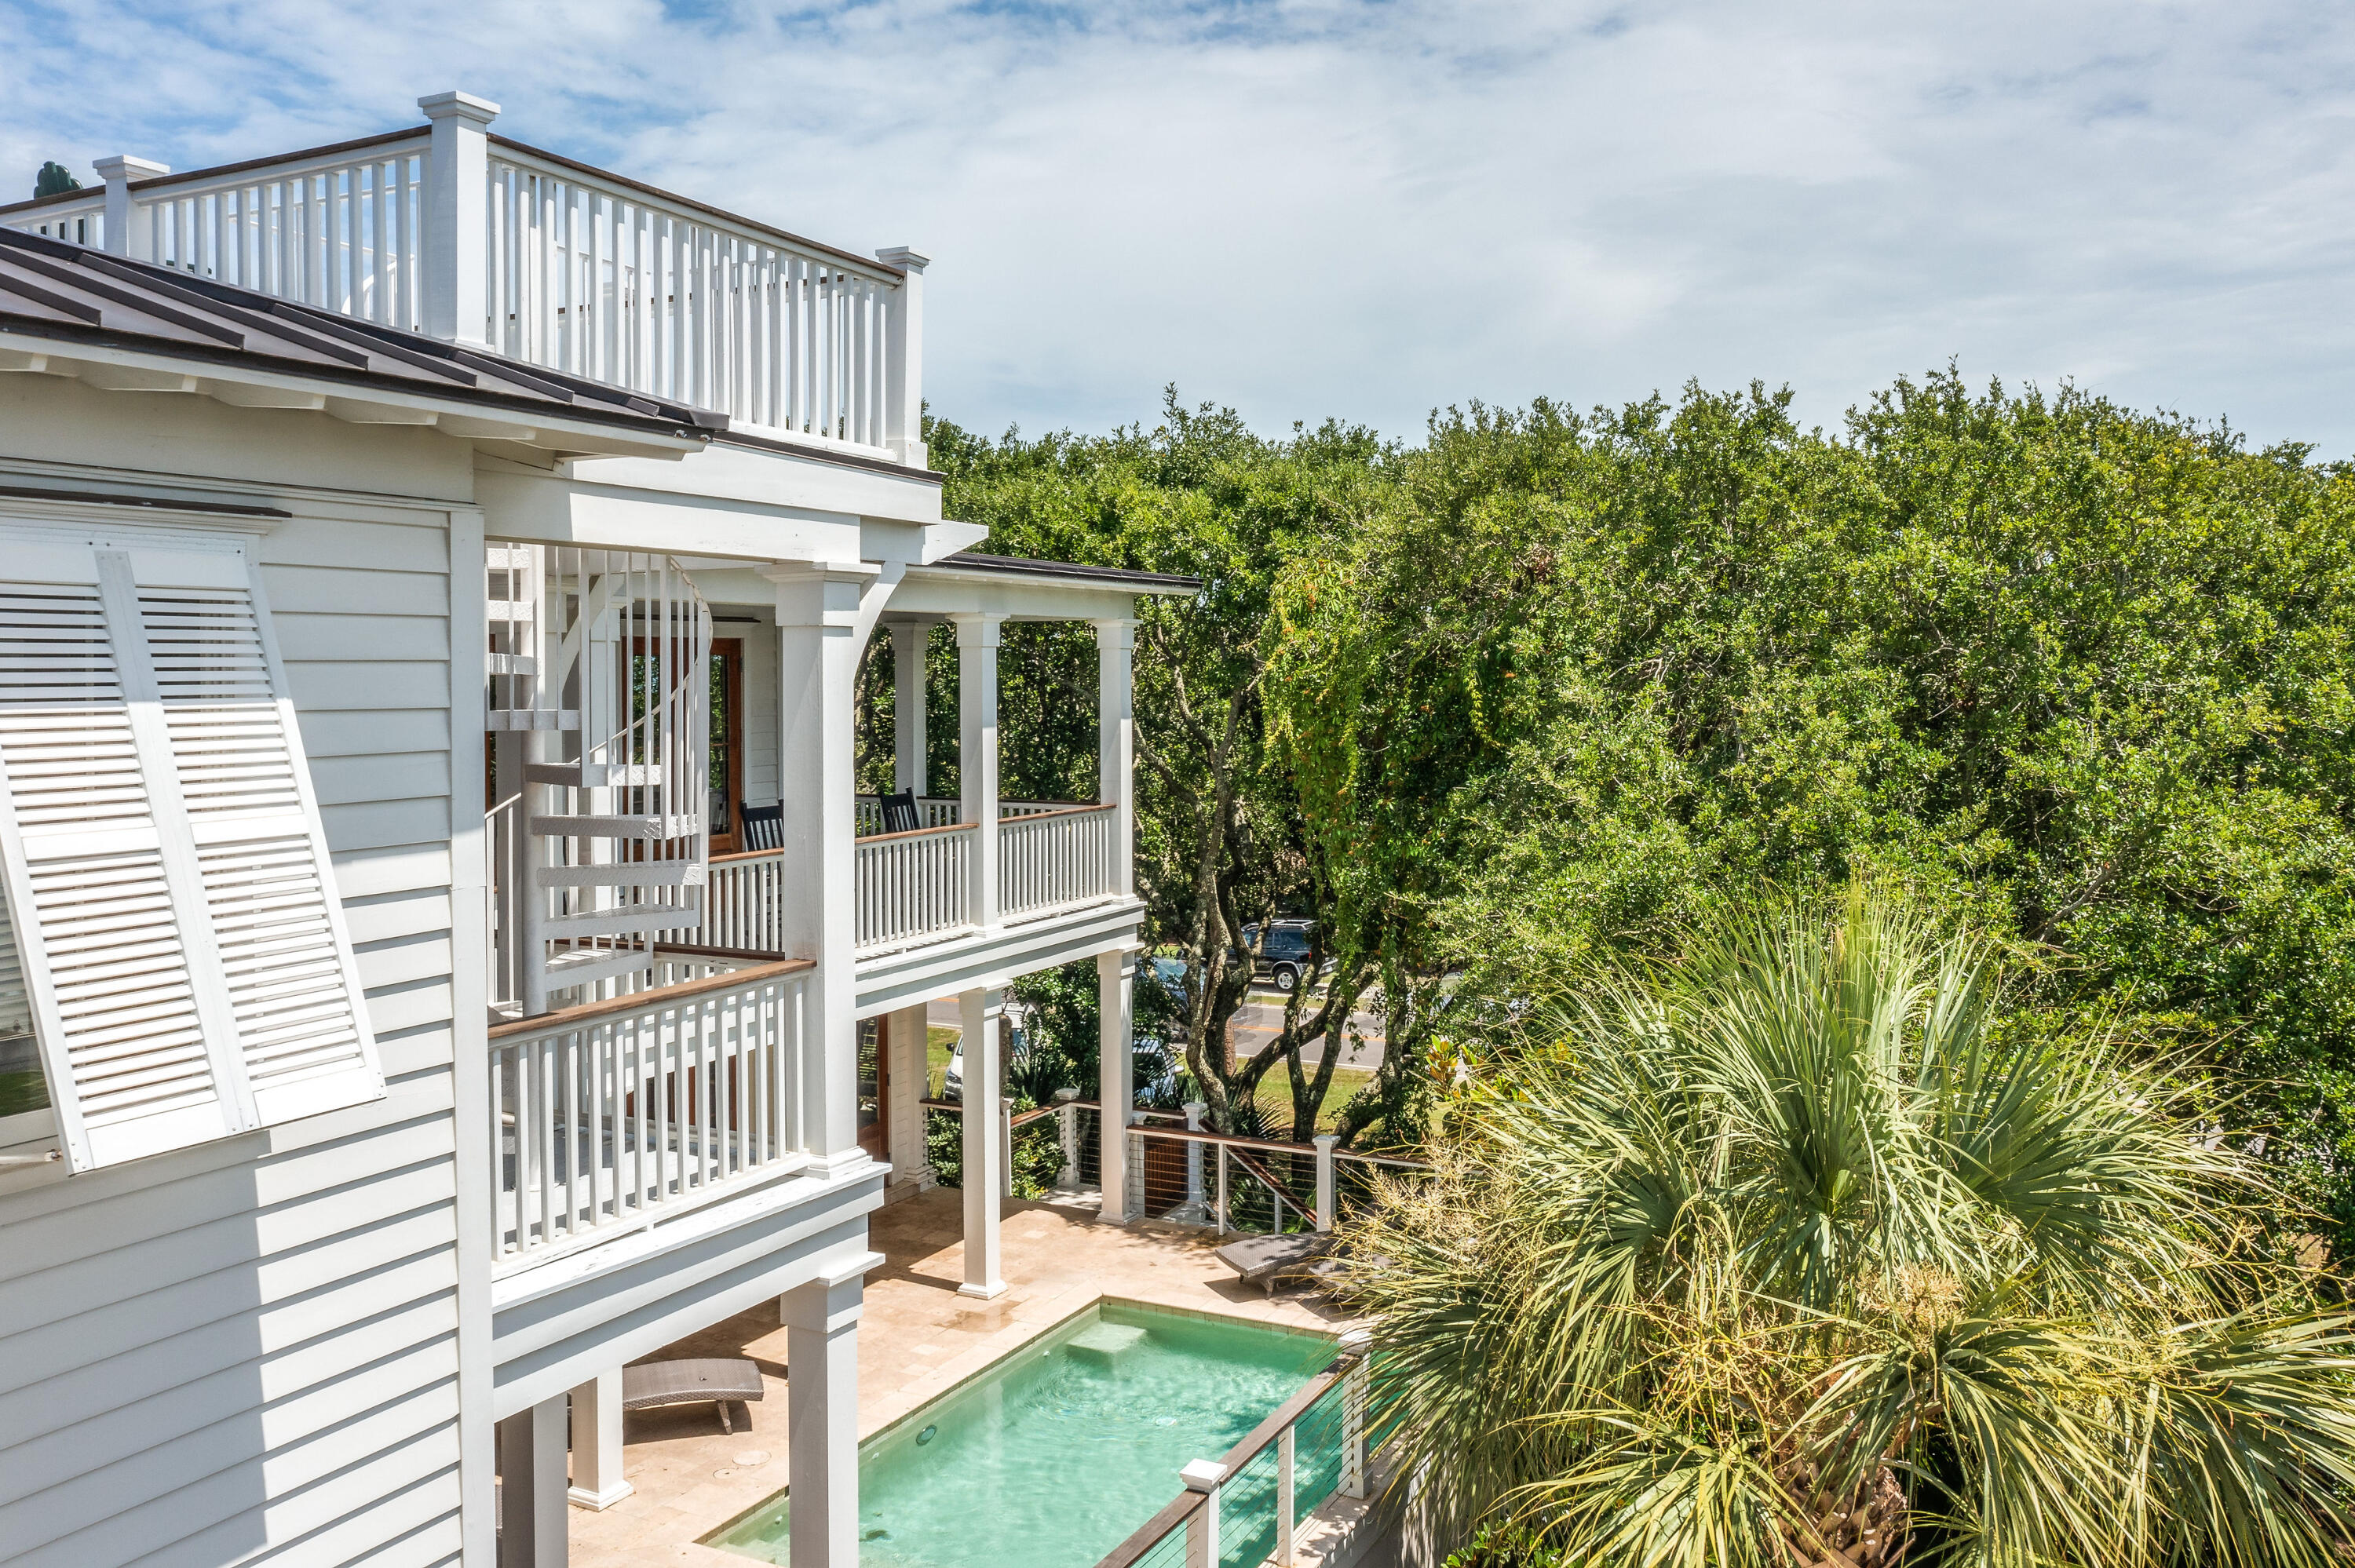 Isle of Palms Homes For Sale - 3301 Palm, Isle of Palms, SC - 57